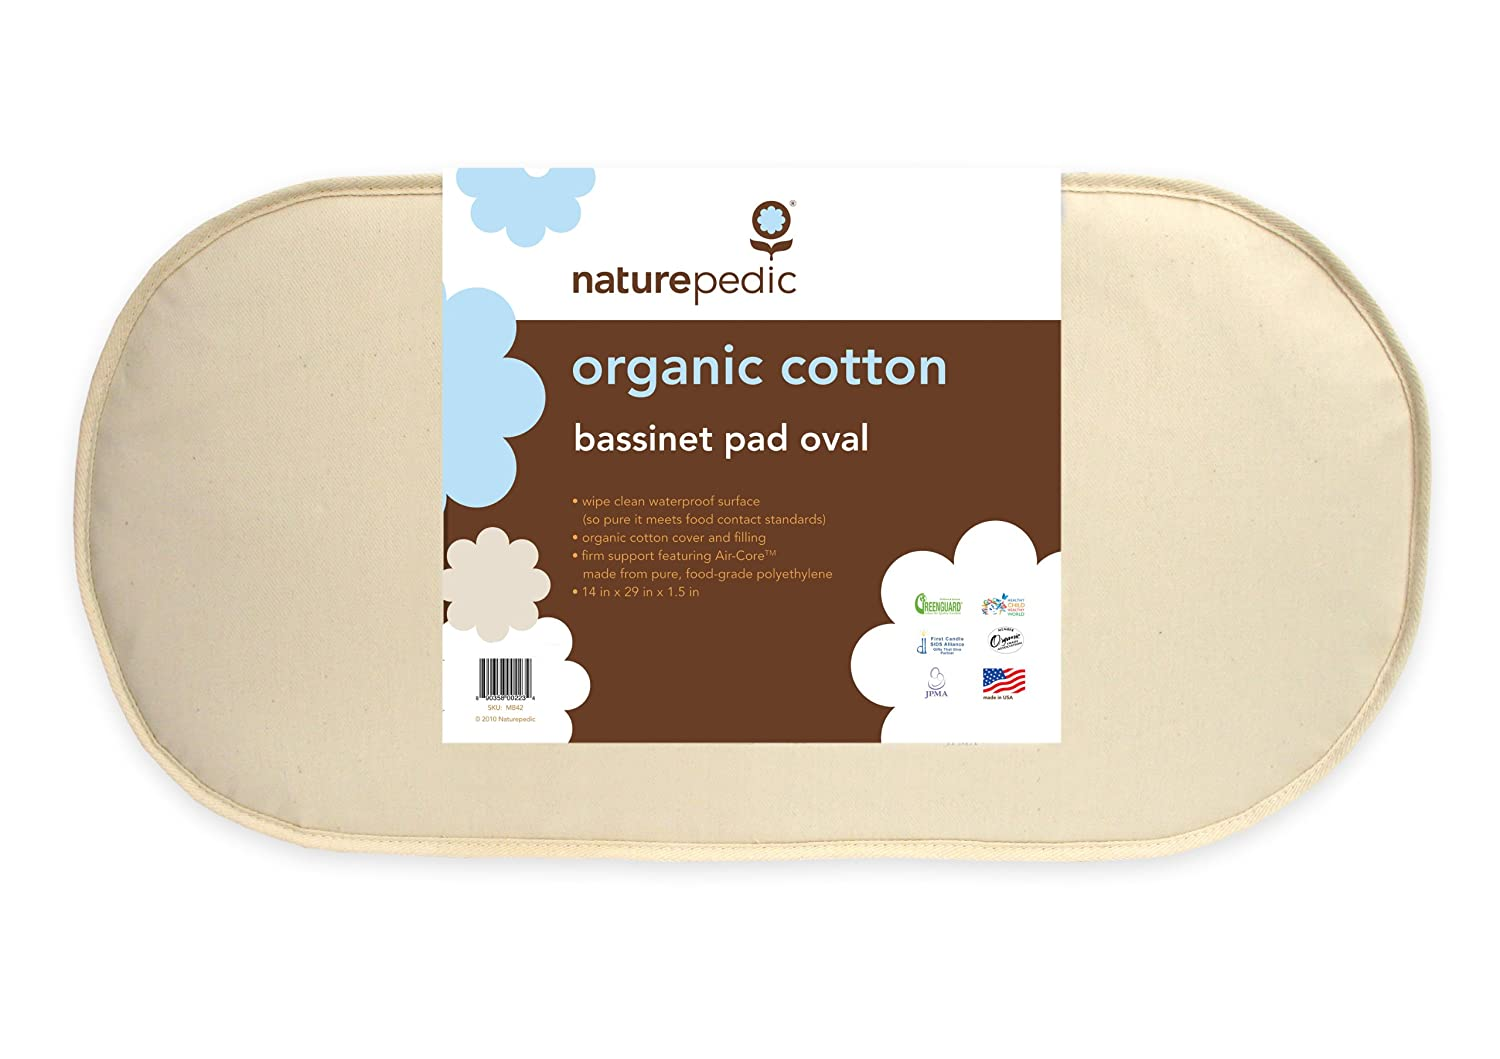 Naturepedic Organic Cotton Bassinet Oval Pad